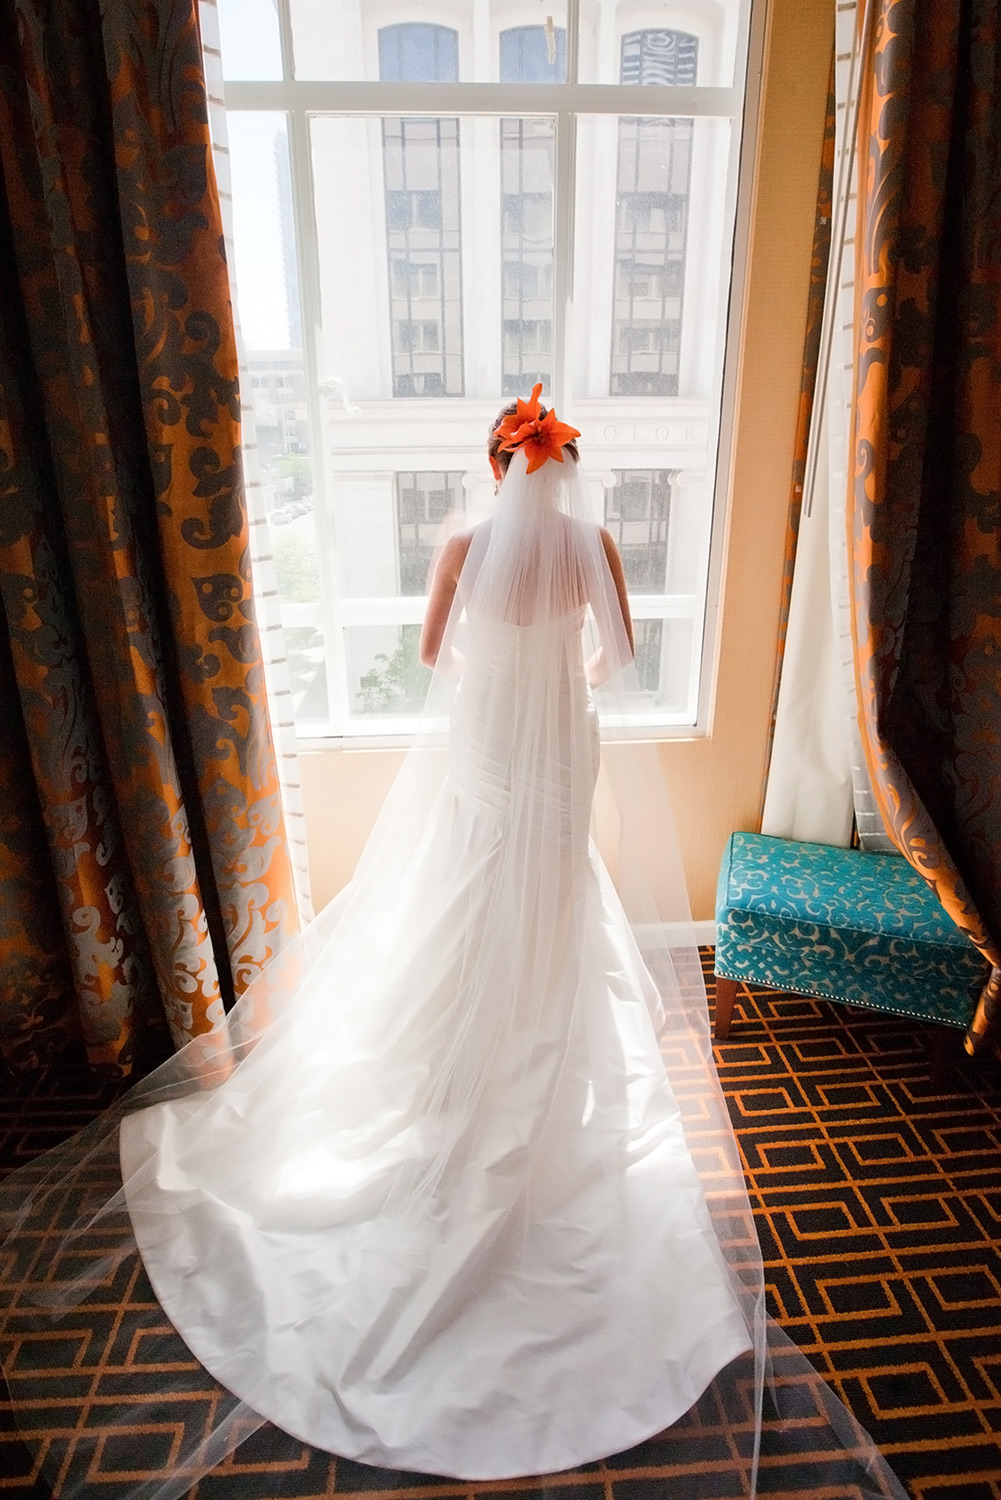 MonacoHotelDenverWedding.jpg